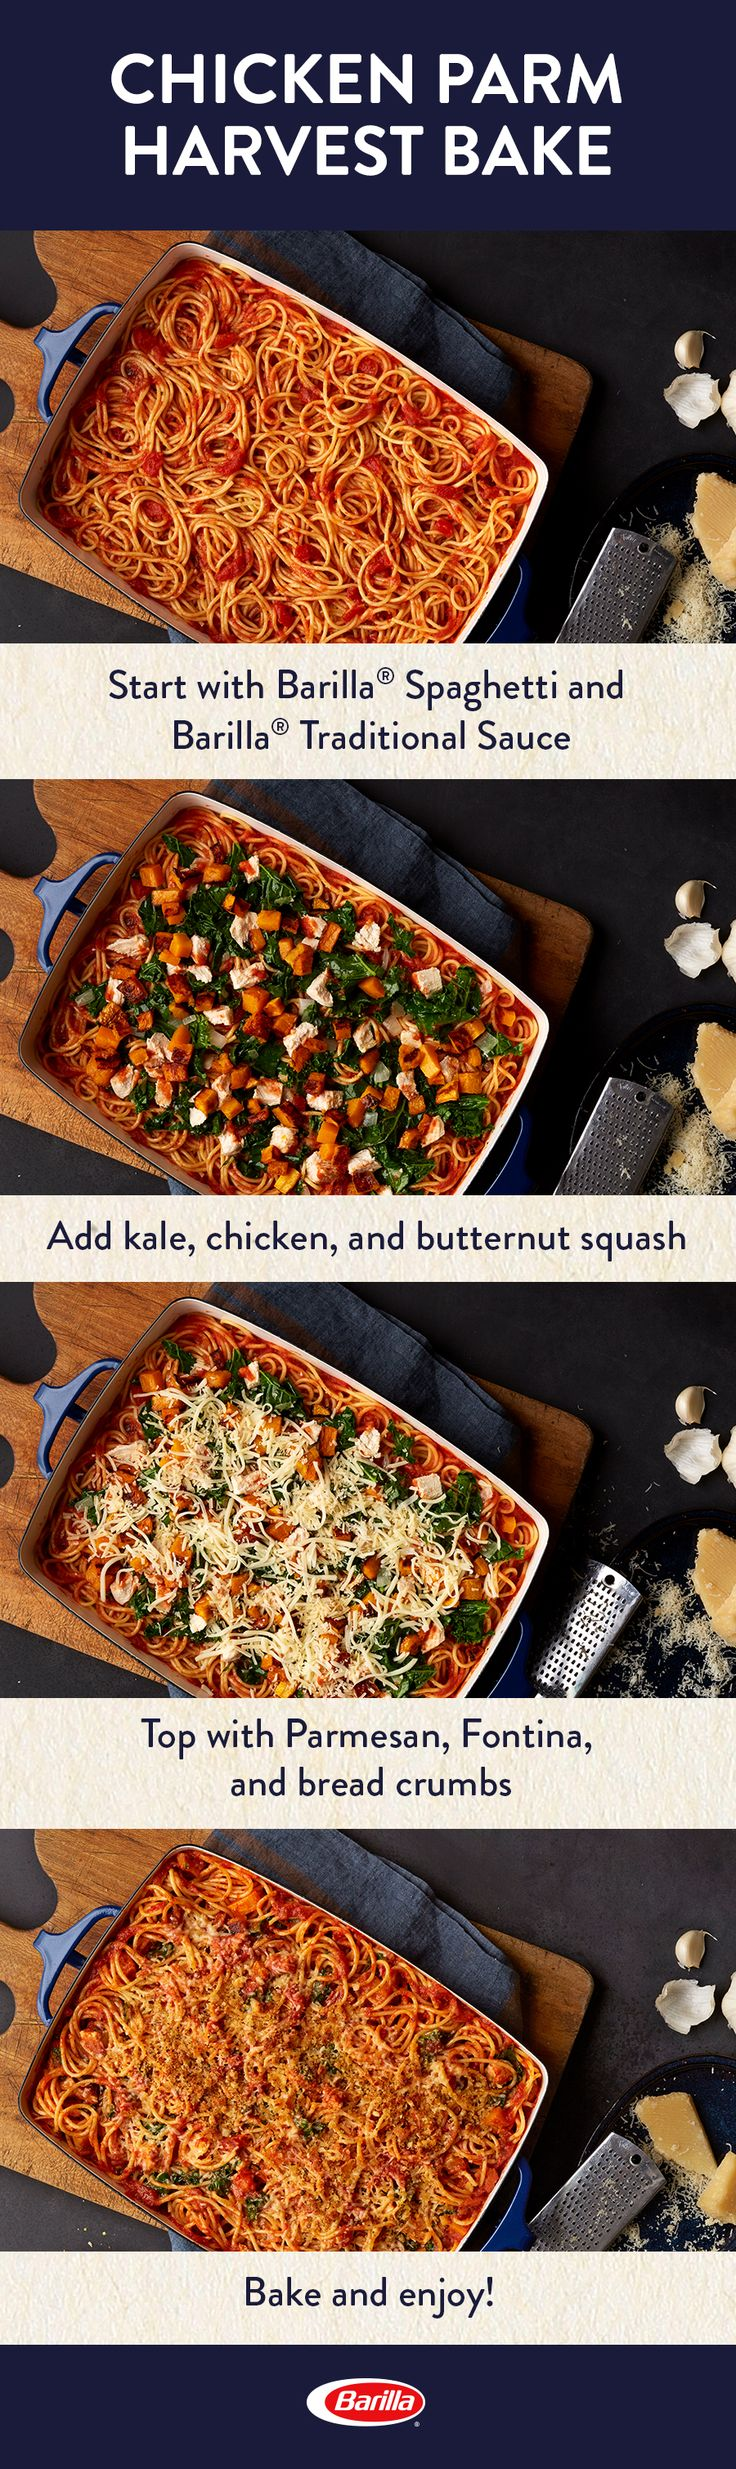 Save this recipe for a comforting pasta bake that's perfect for the fall season! Full of veggies like butternut squash and kale, this spaghetti and Traditional sauce meal is easy to prepare for a big family dinner.